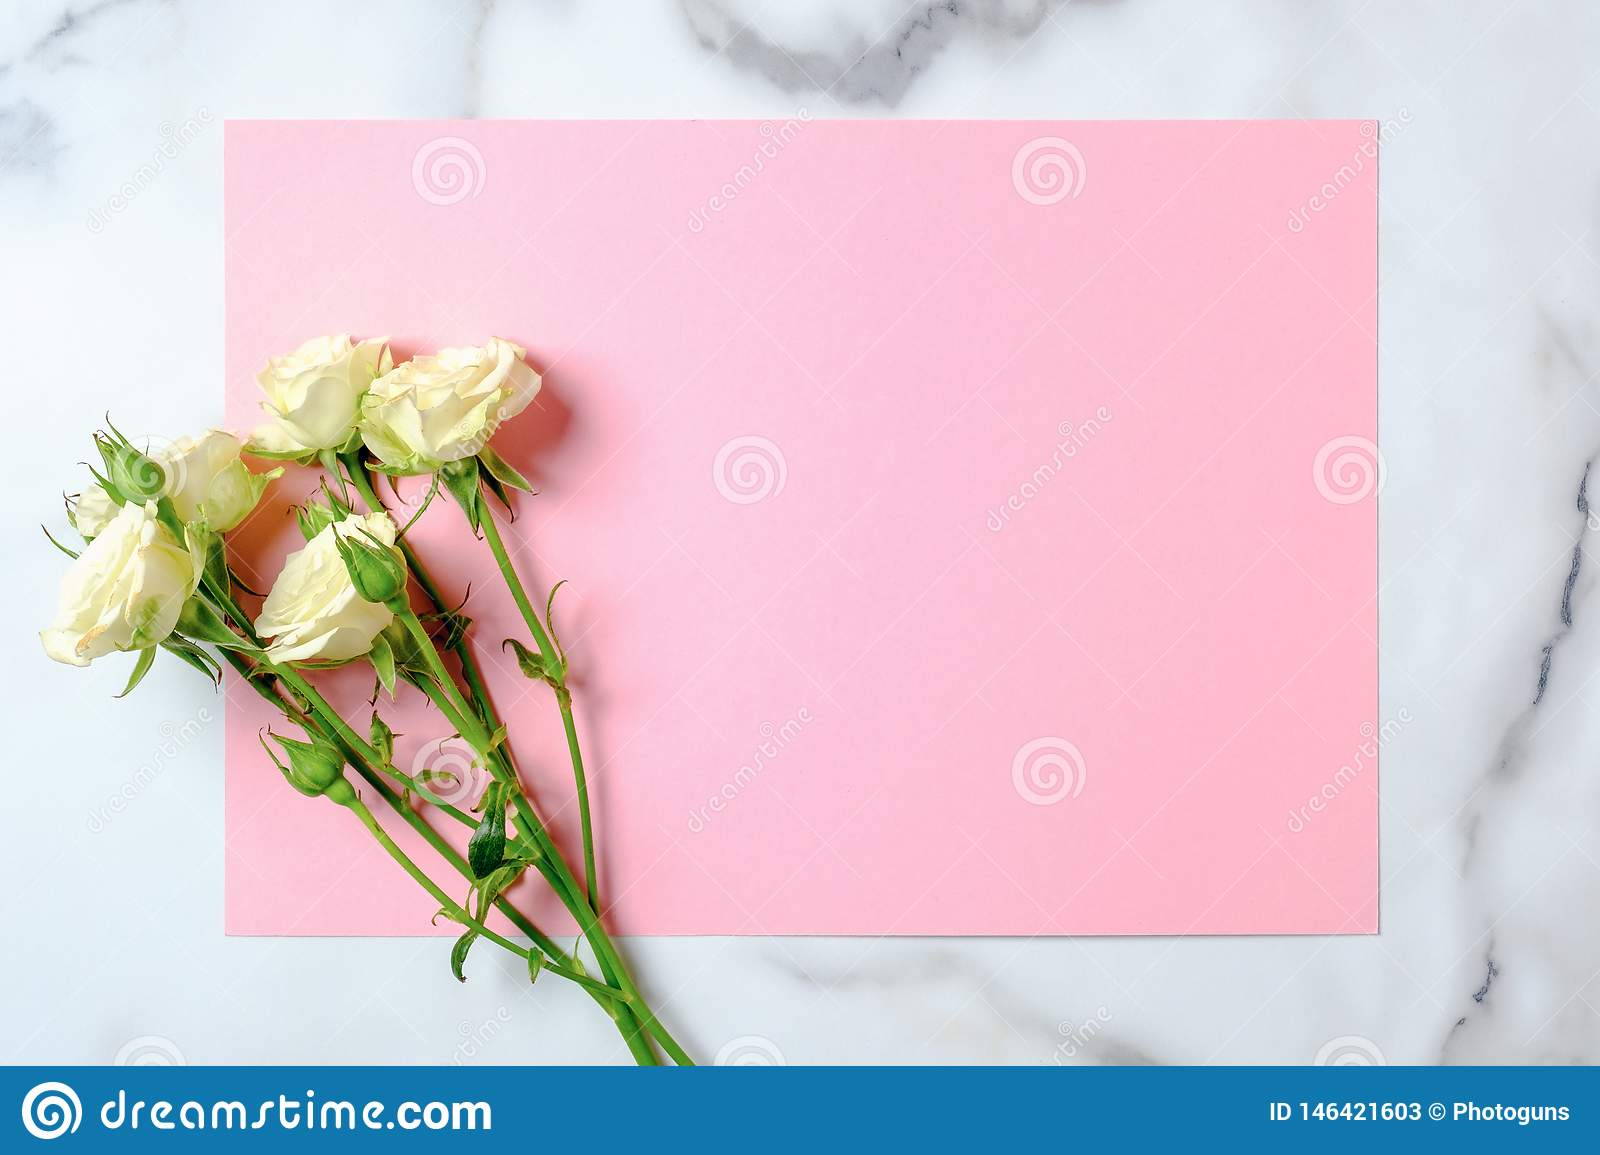 https www dreamstime com wedding invitation card rose flowers blank pink paper card marble background wedding concept flat lay top view wedding image146421603